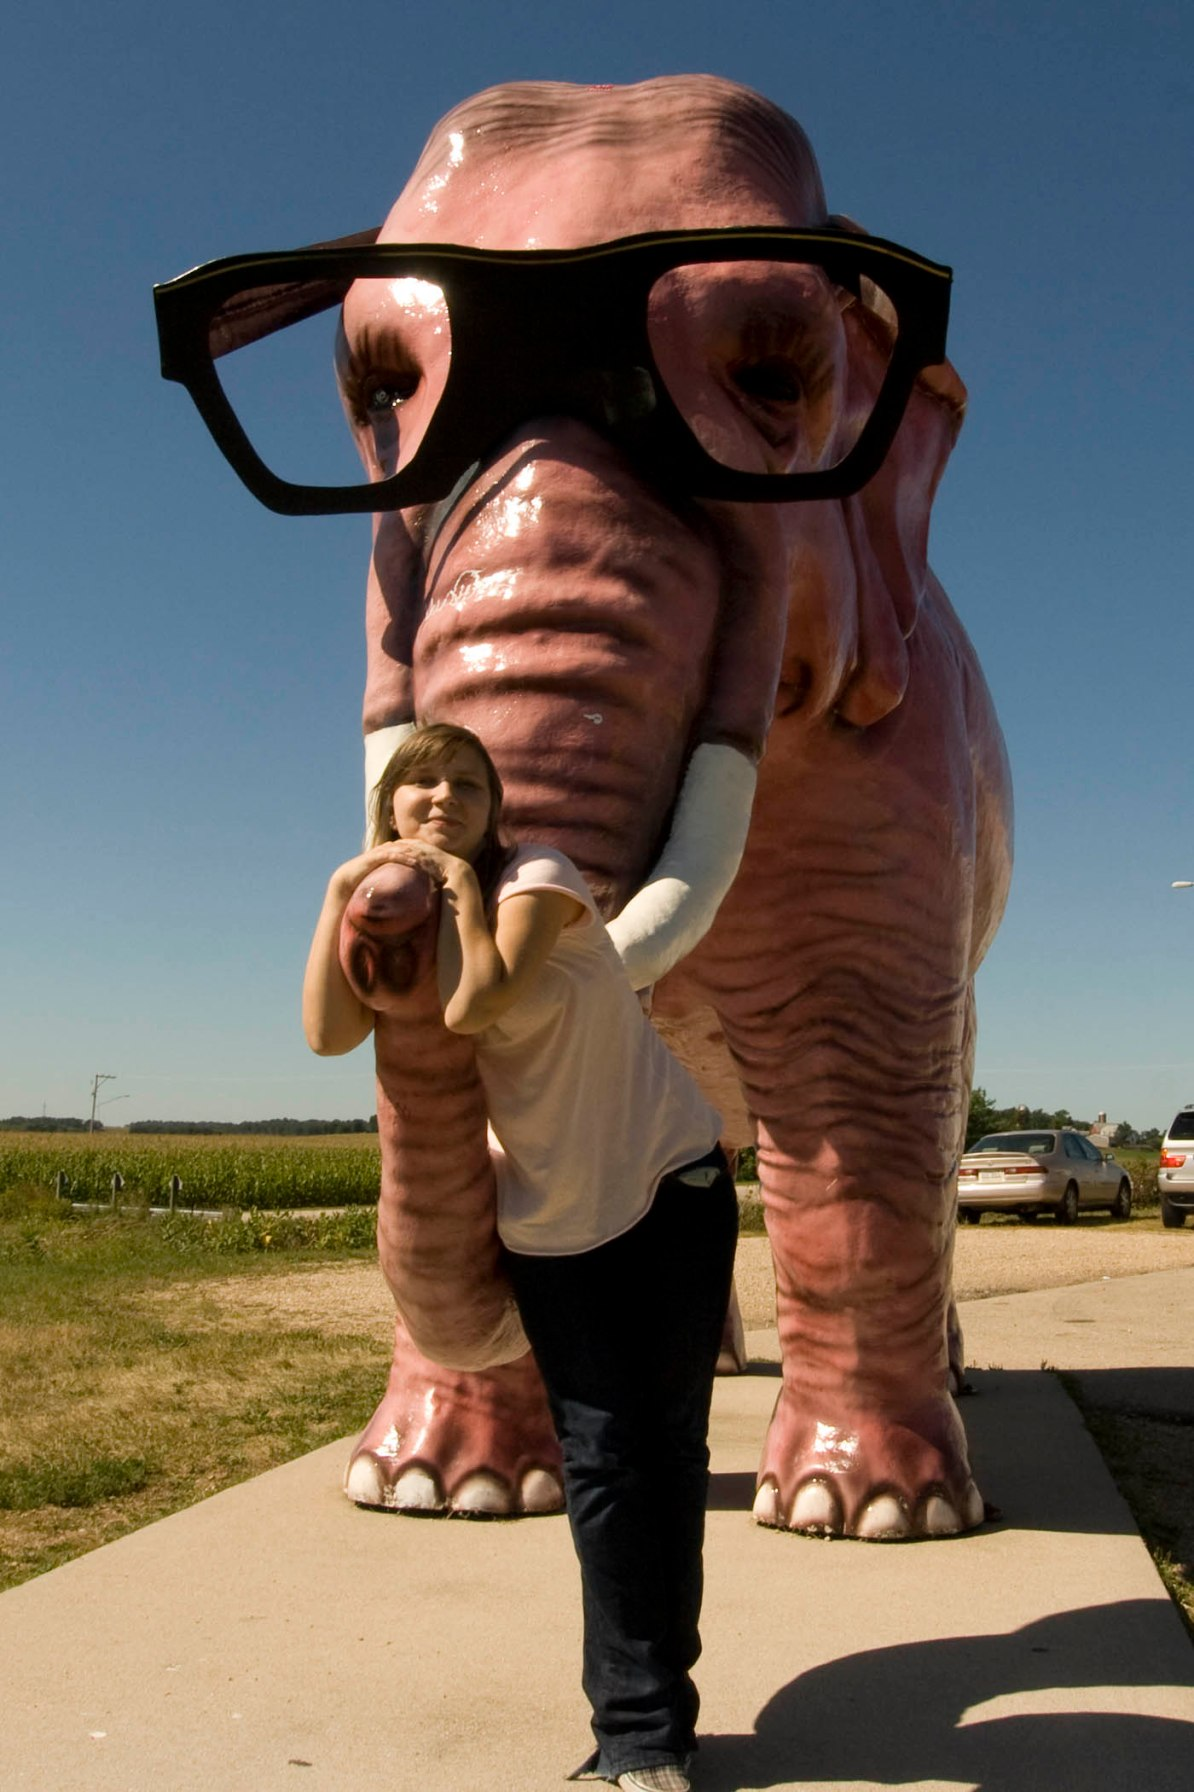 Pink Elephant with Glasses - a roadside attraction in DeForest, Wisconsin